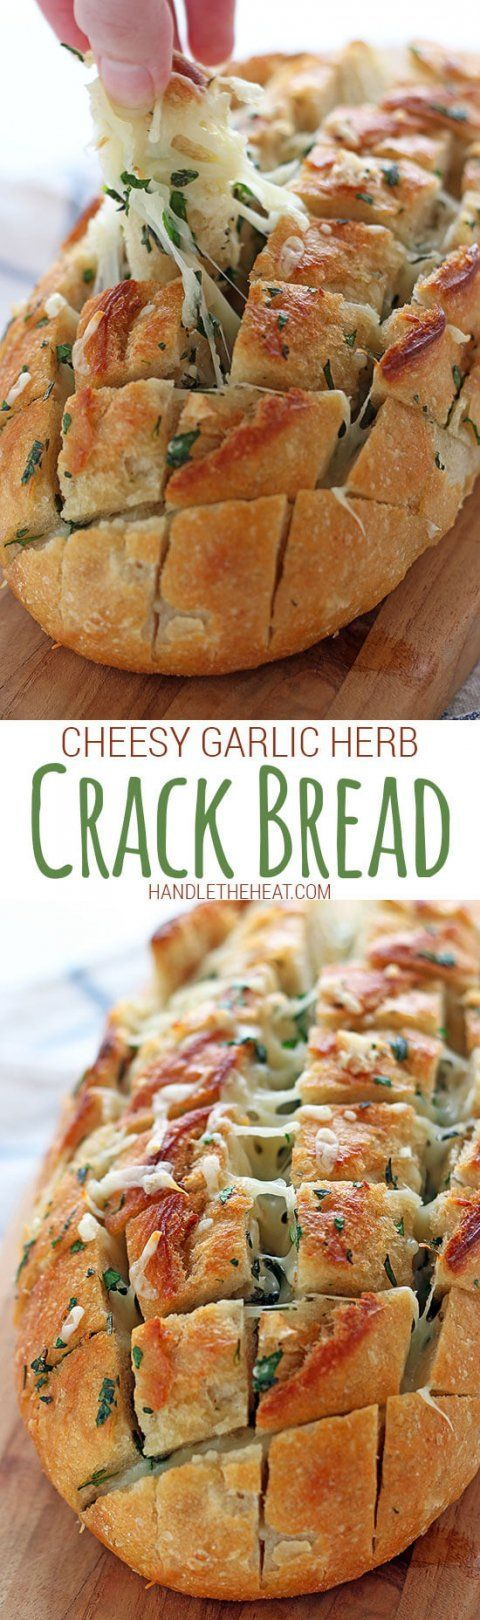 The BEST BREAD I've ever eaten!! So cheesy, buttery, and flavorful!! Crowd pleasing recipe.